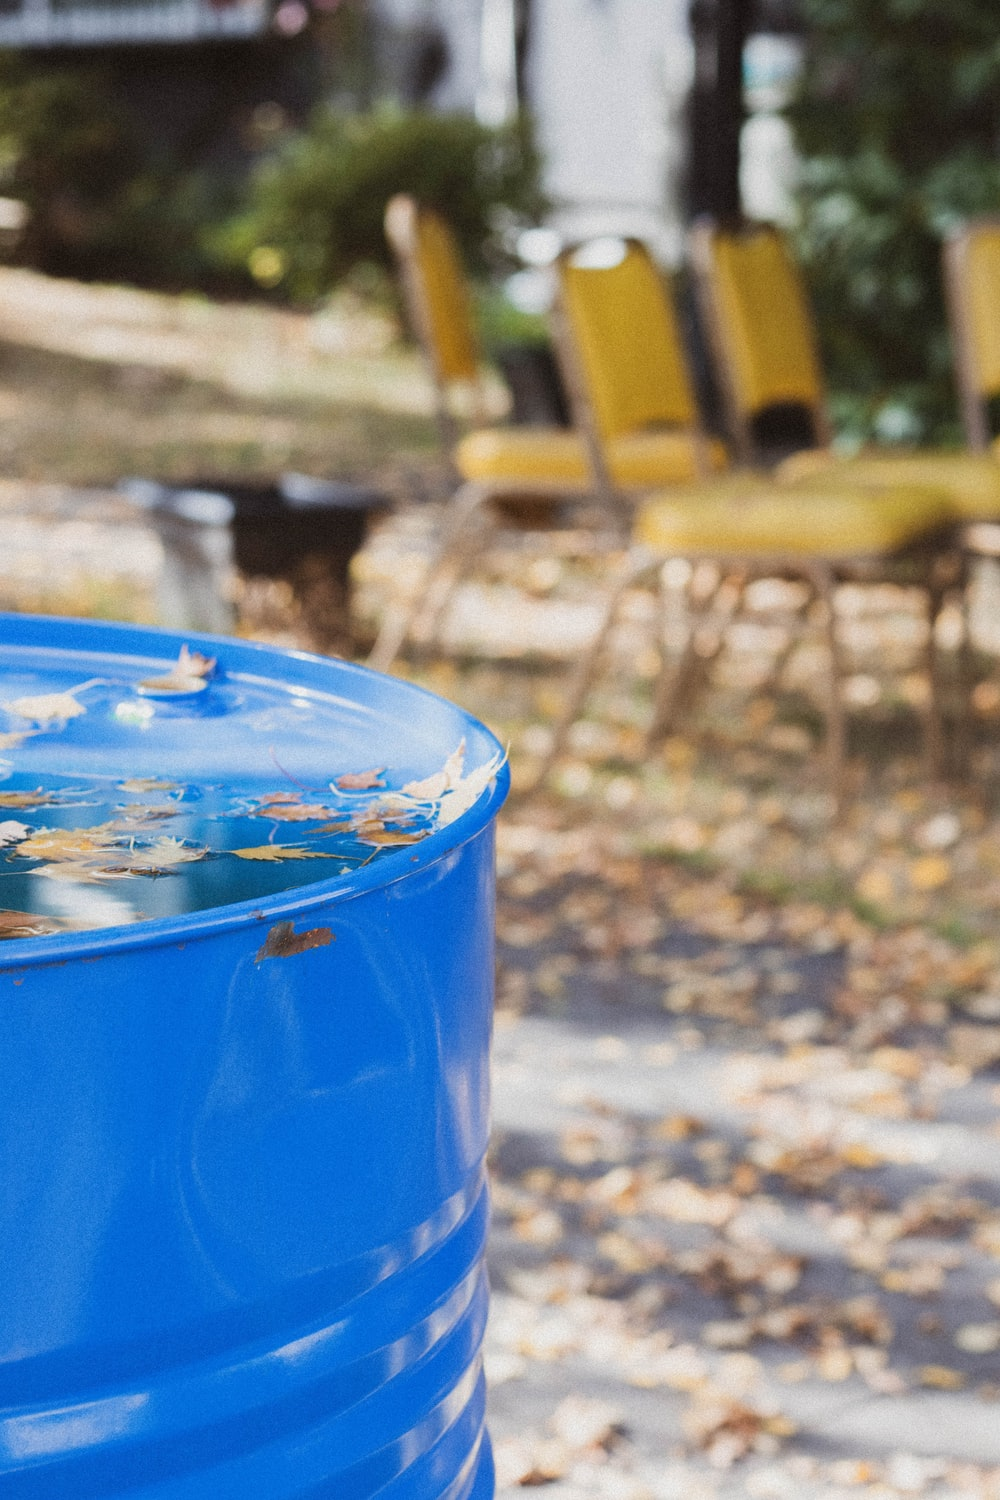 blue plastic bucket on brown wooden table